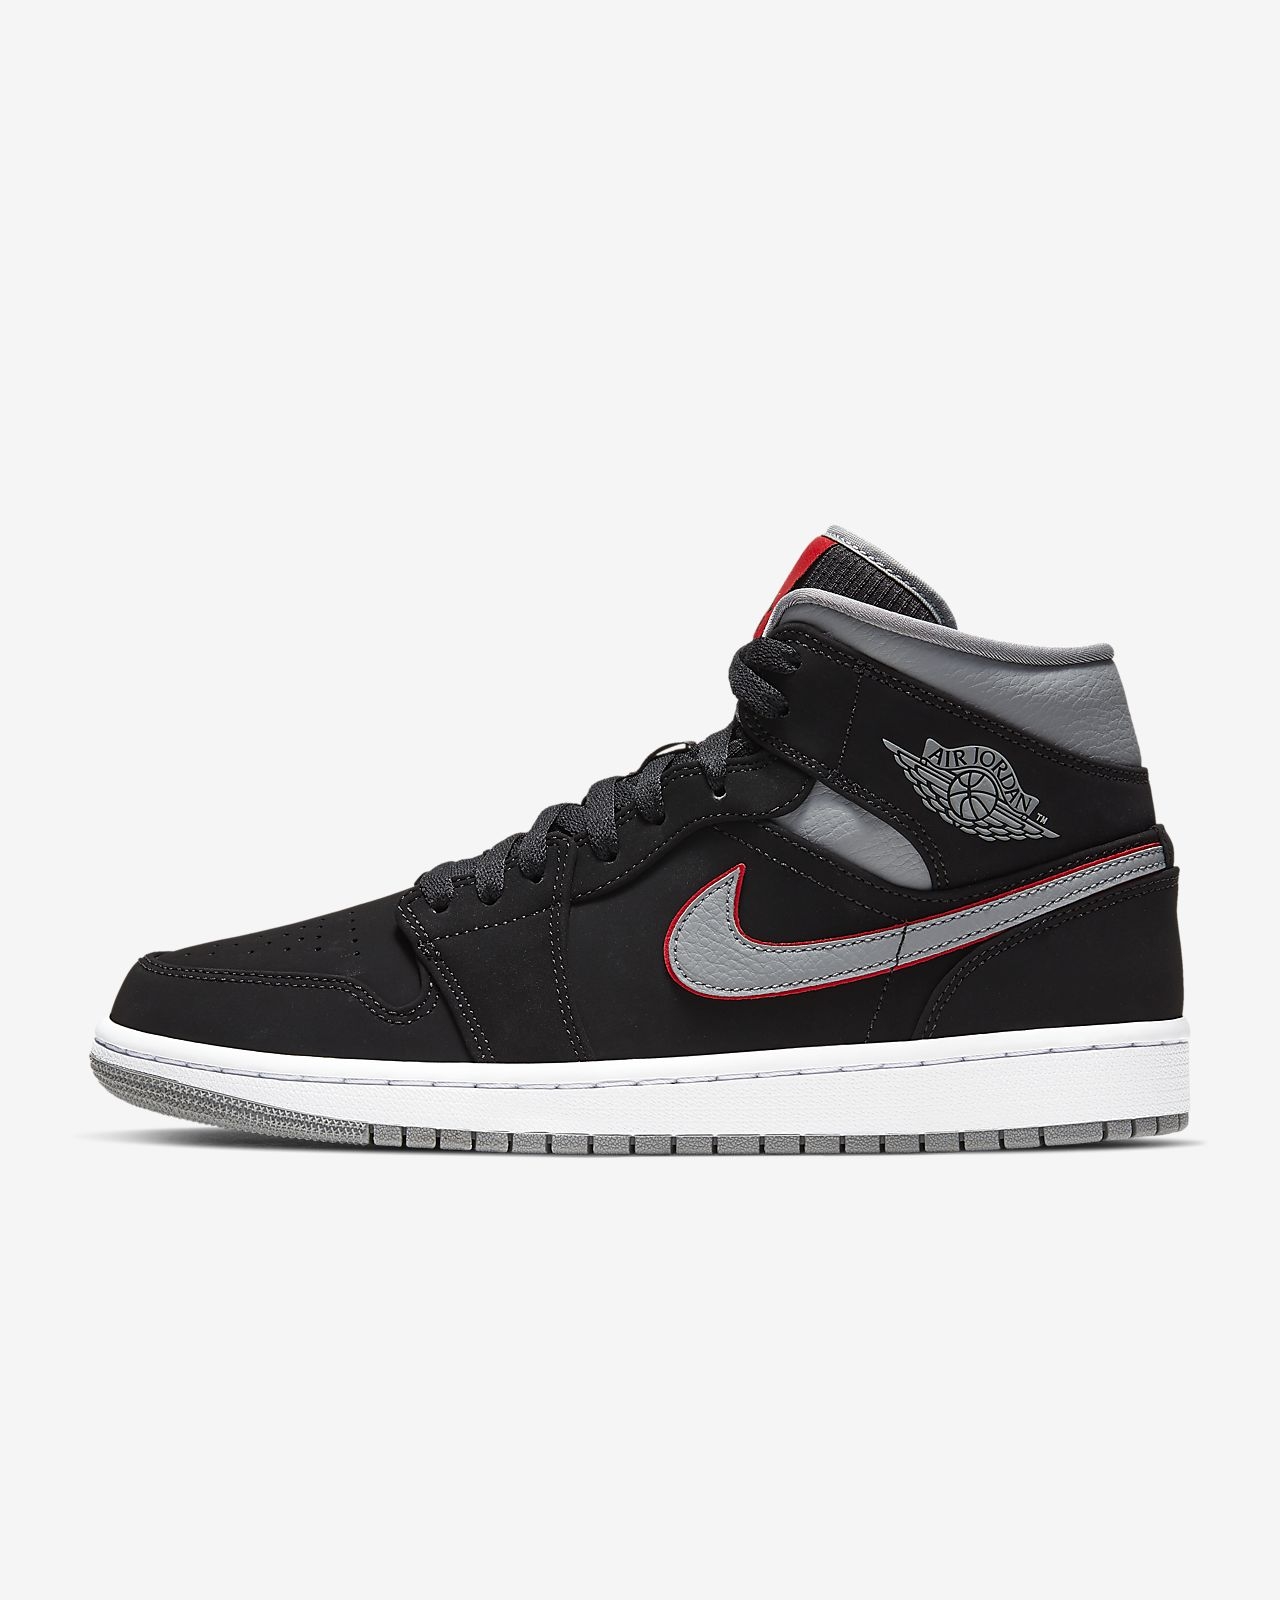 on sale 837b4 46f63 Men s Shoe. Air Jordan 1 Mid